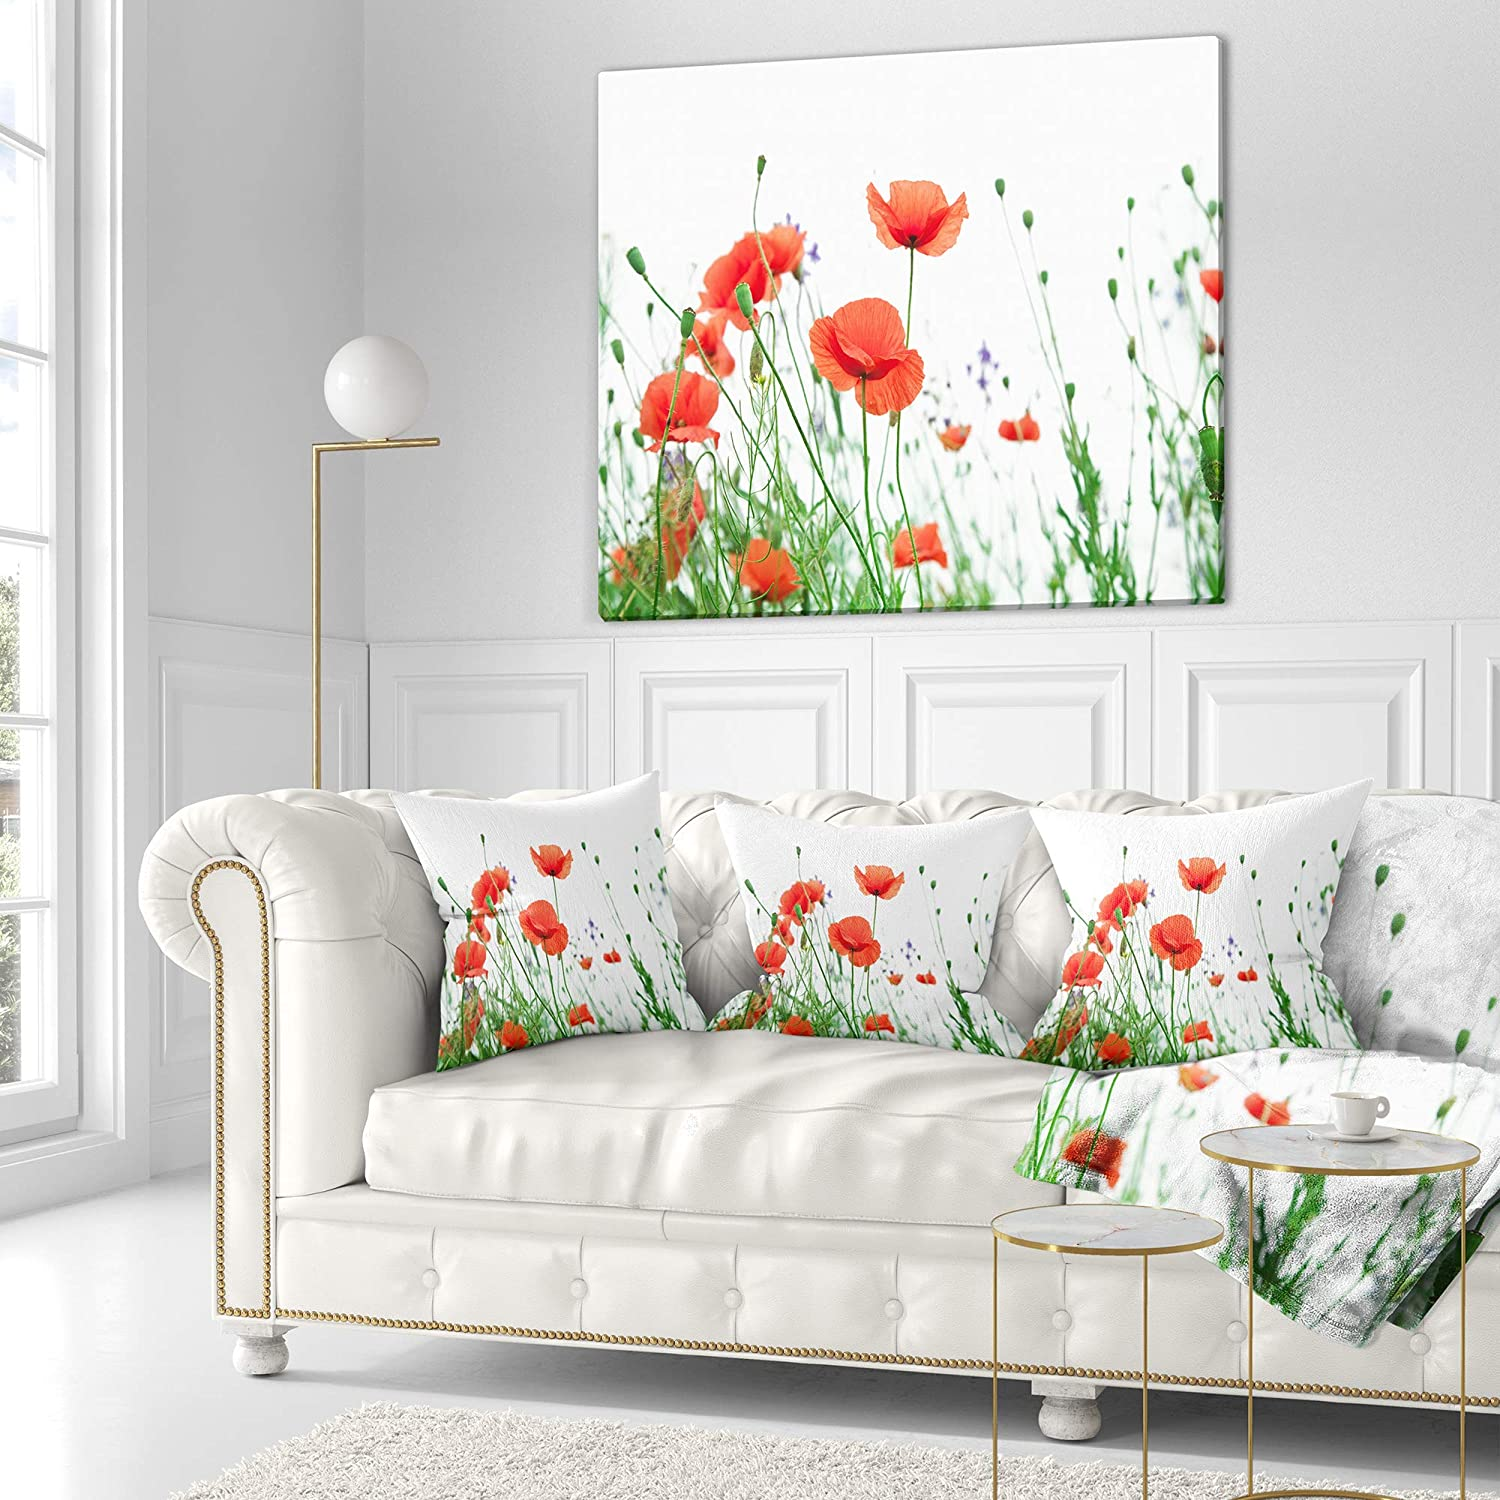 In Designart Cu13001 26 26 Poppy Flowers On White Background Floral Cushion Cover For Living Room Sofa Throw Pillow 26 In X 26 In